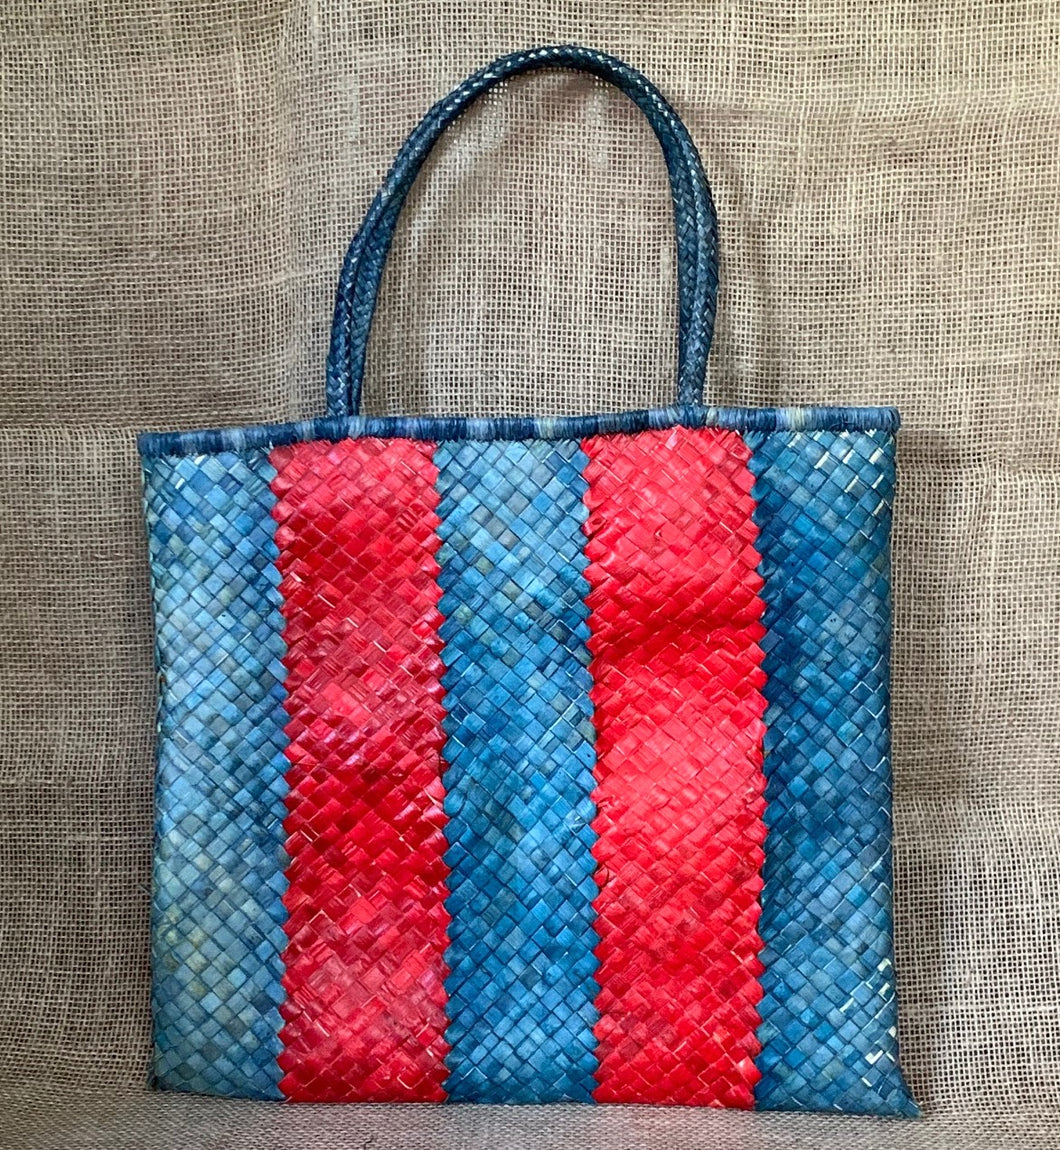 Striped beauty, handbag